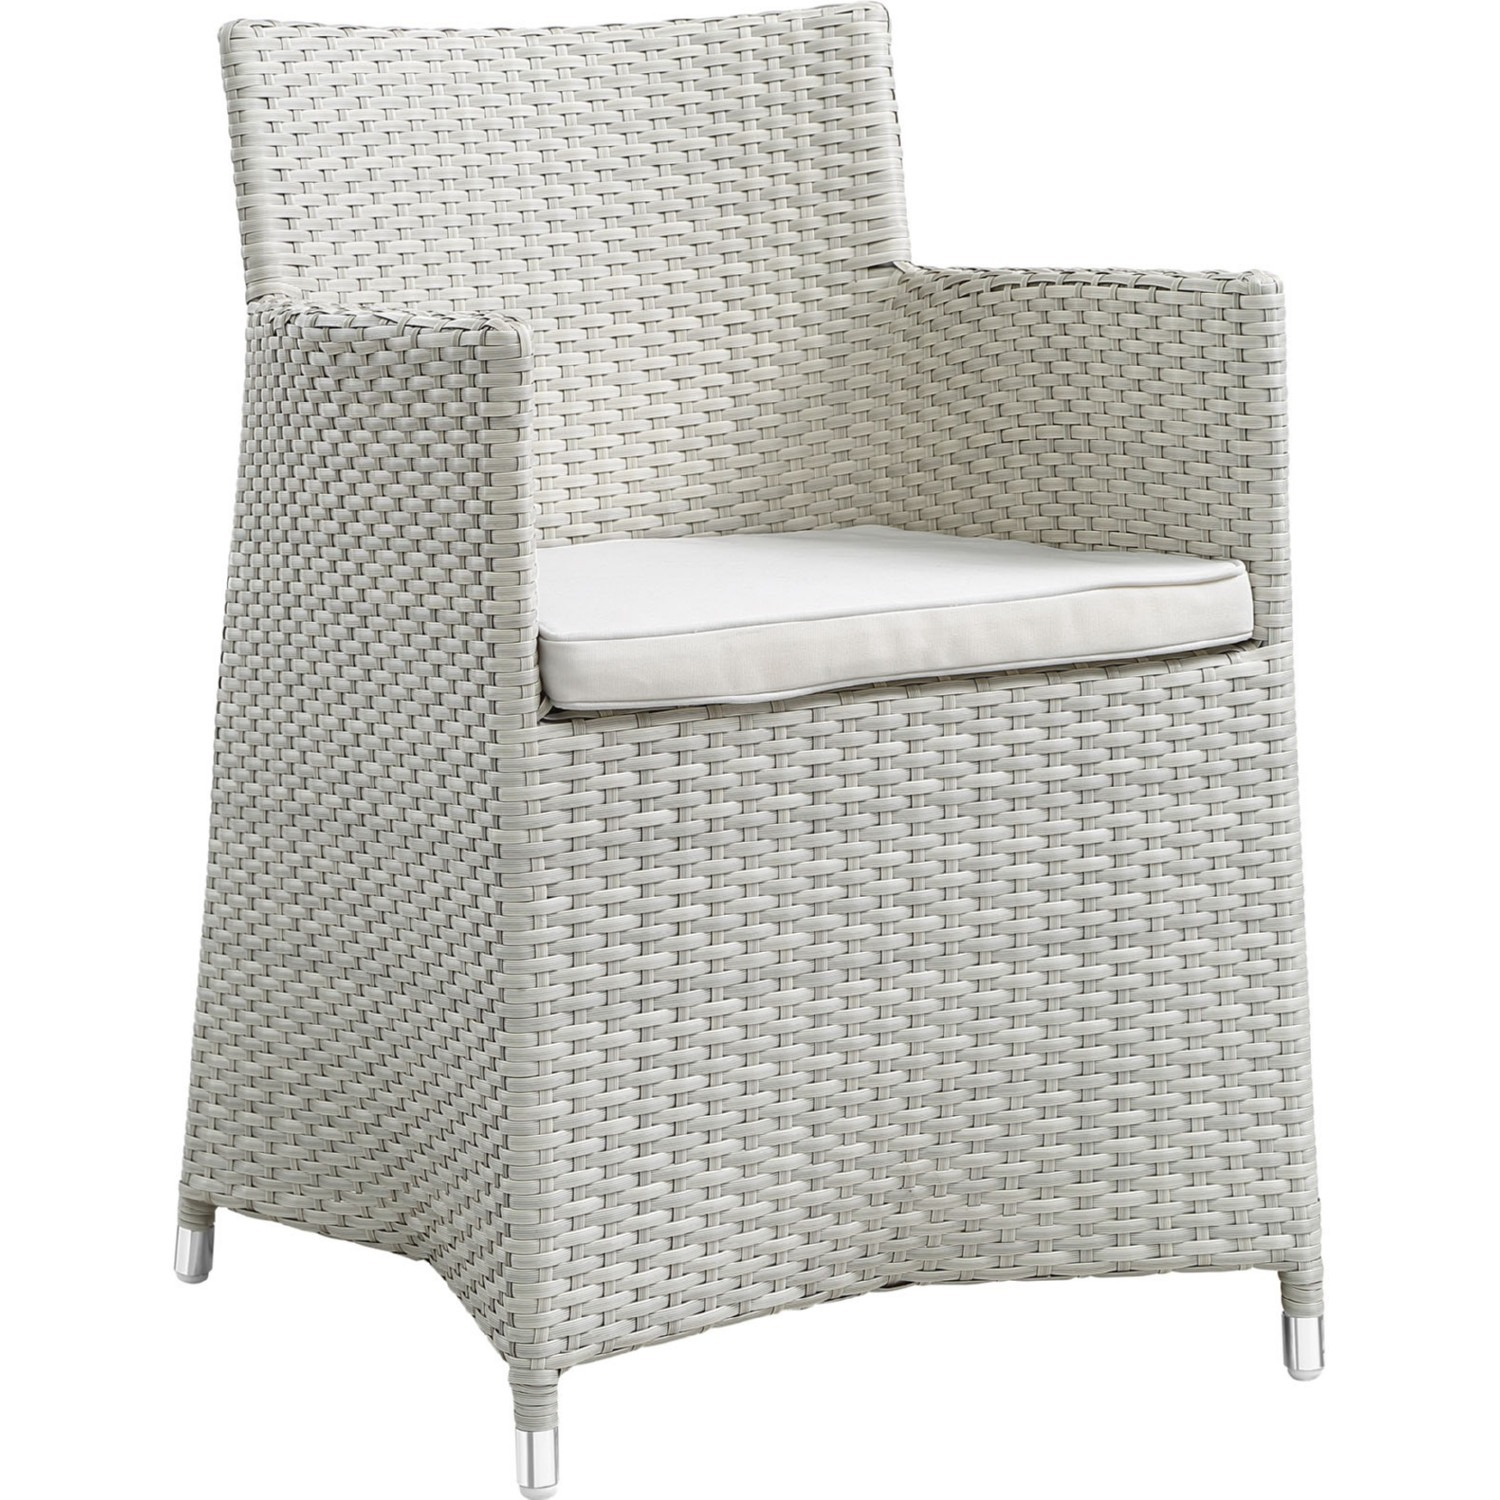 Modern 9-Piece Dining Set In Gray Rattan Weave - image-1